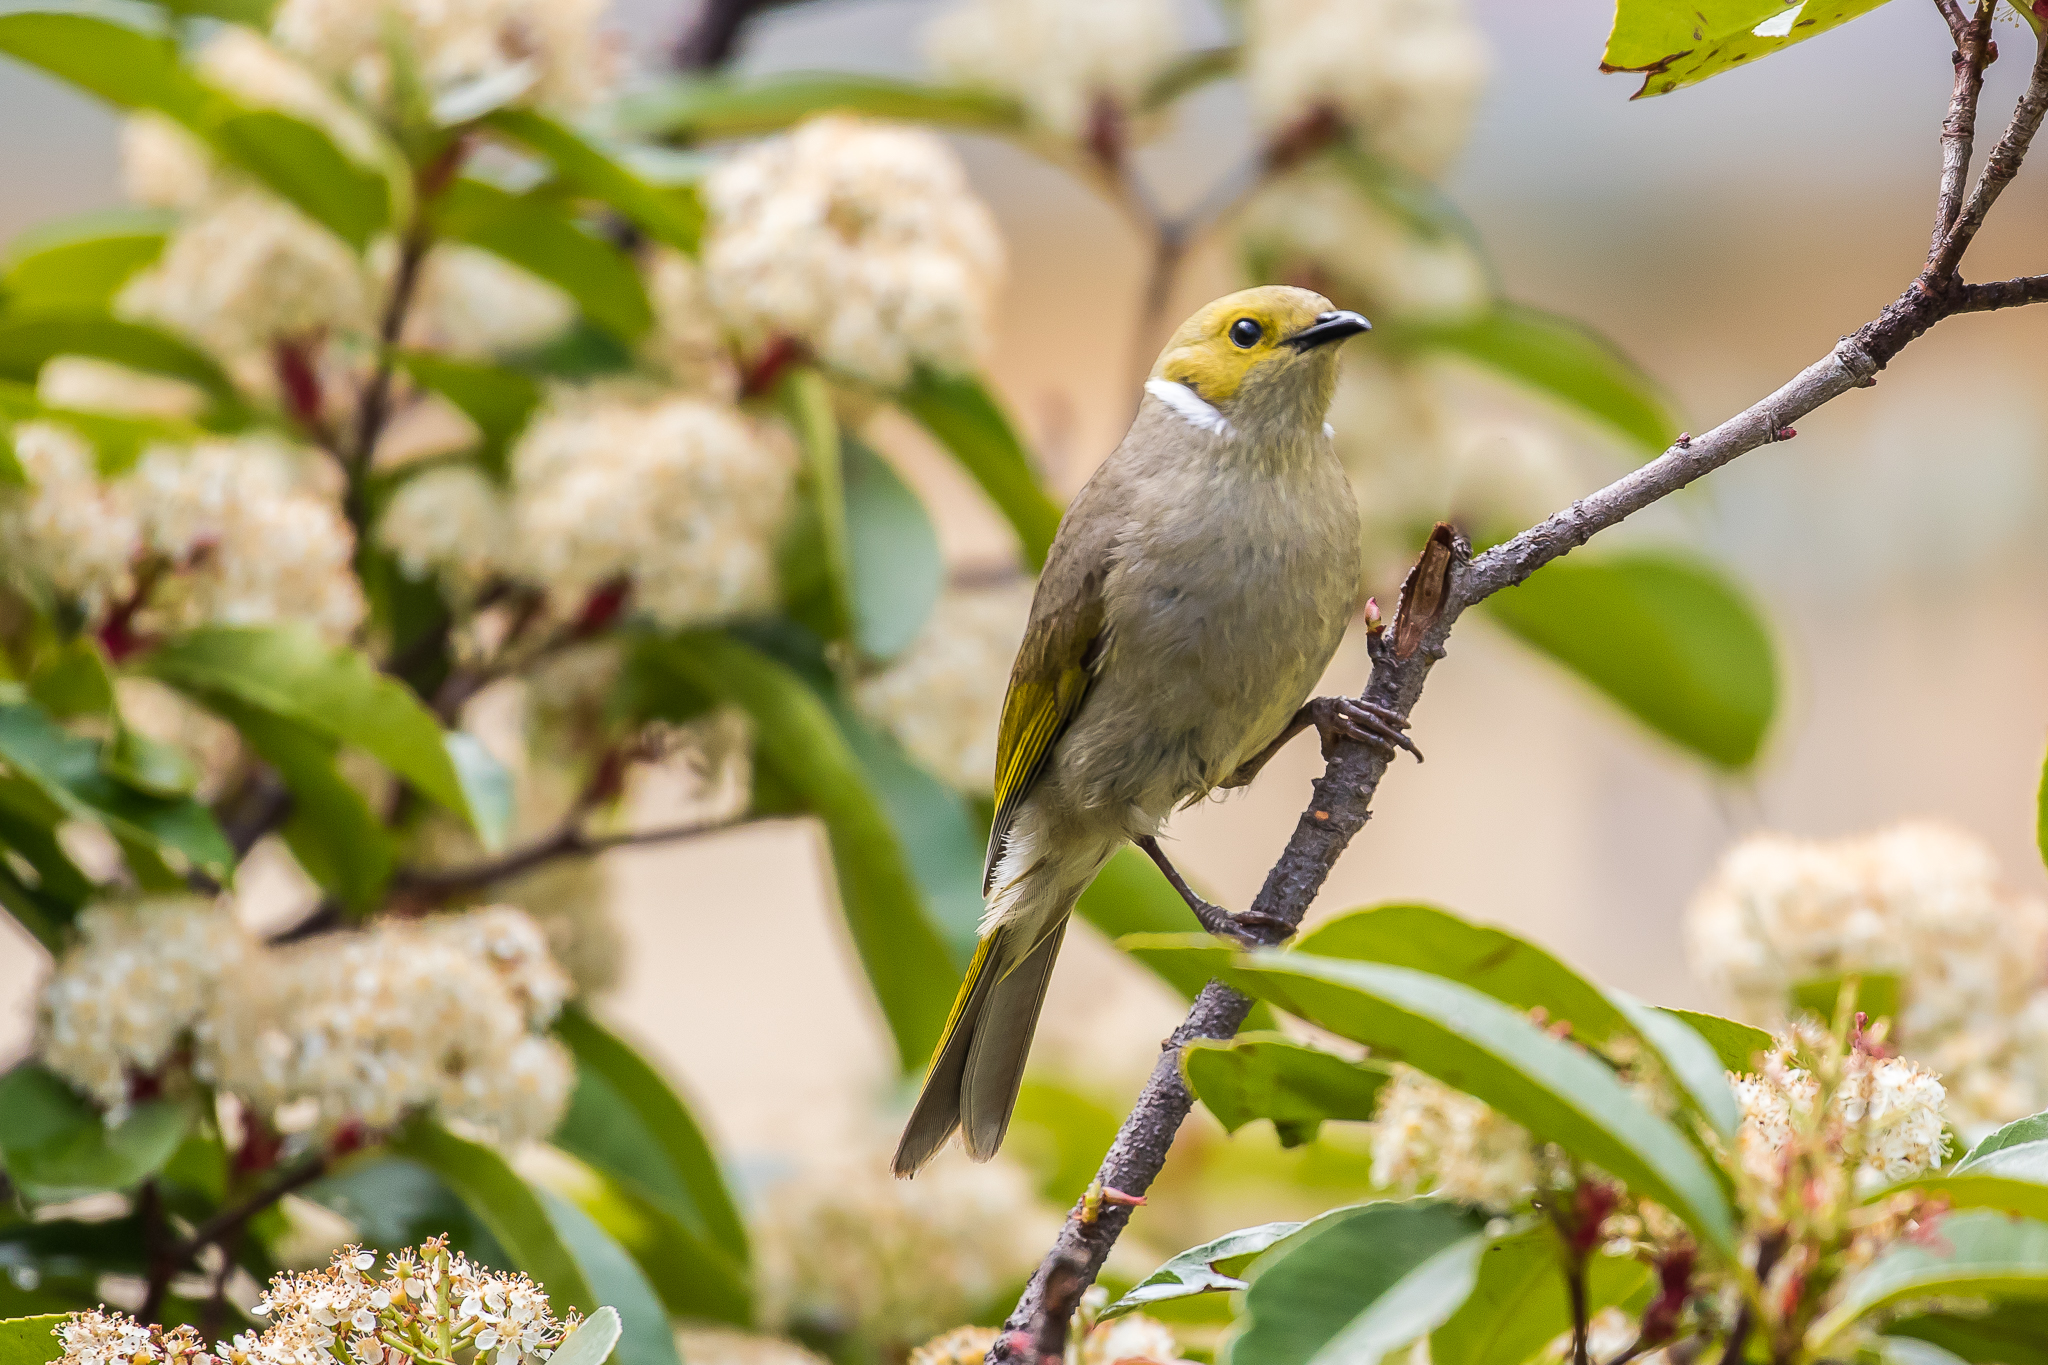 White-plumed Honeyeaters and other honeyeaters take advantage of nectar from garden plants as well as their main food source, the nectar, pollen and manna from flowering eucalyptus trees. The White-plumed Honeyeater can be seen in open bush and road-side trees.